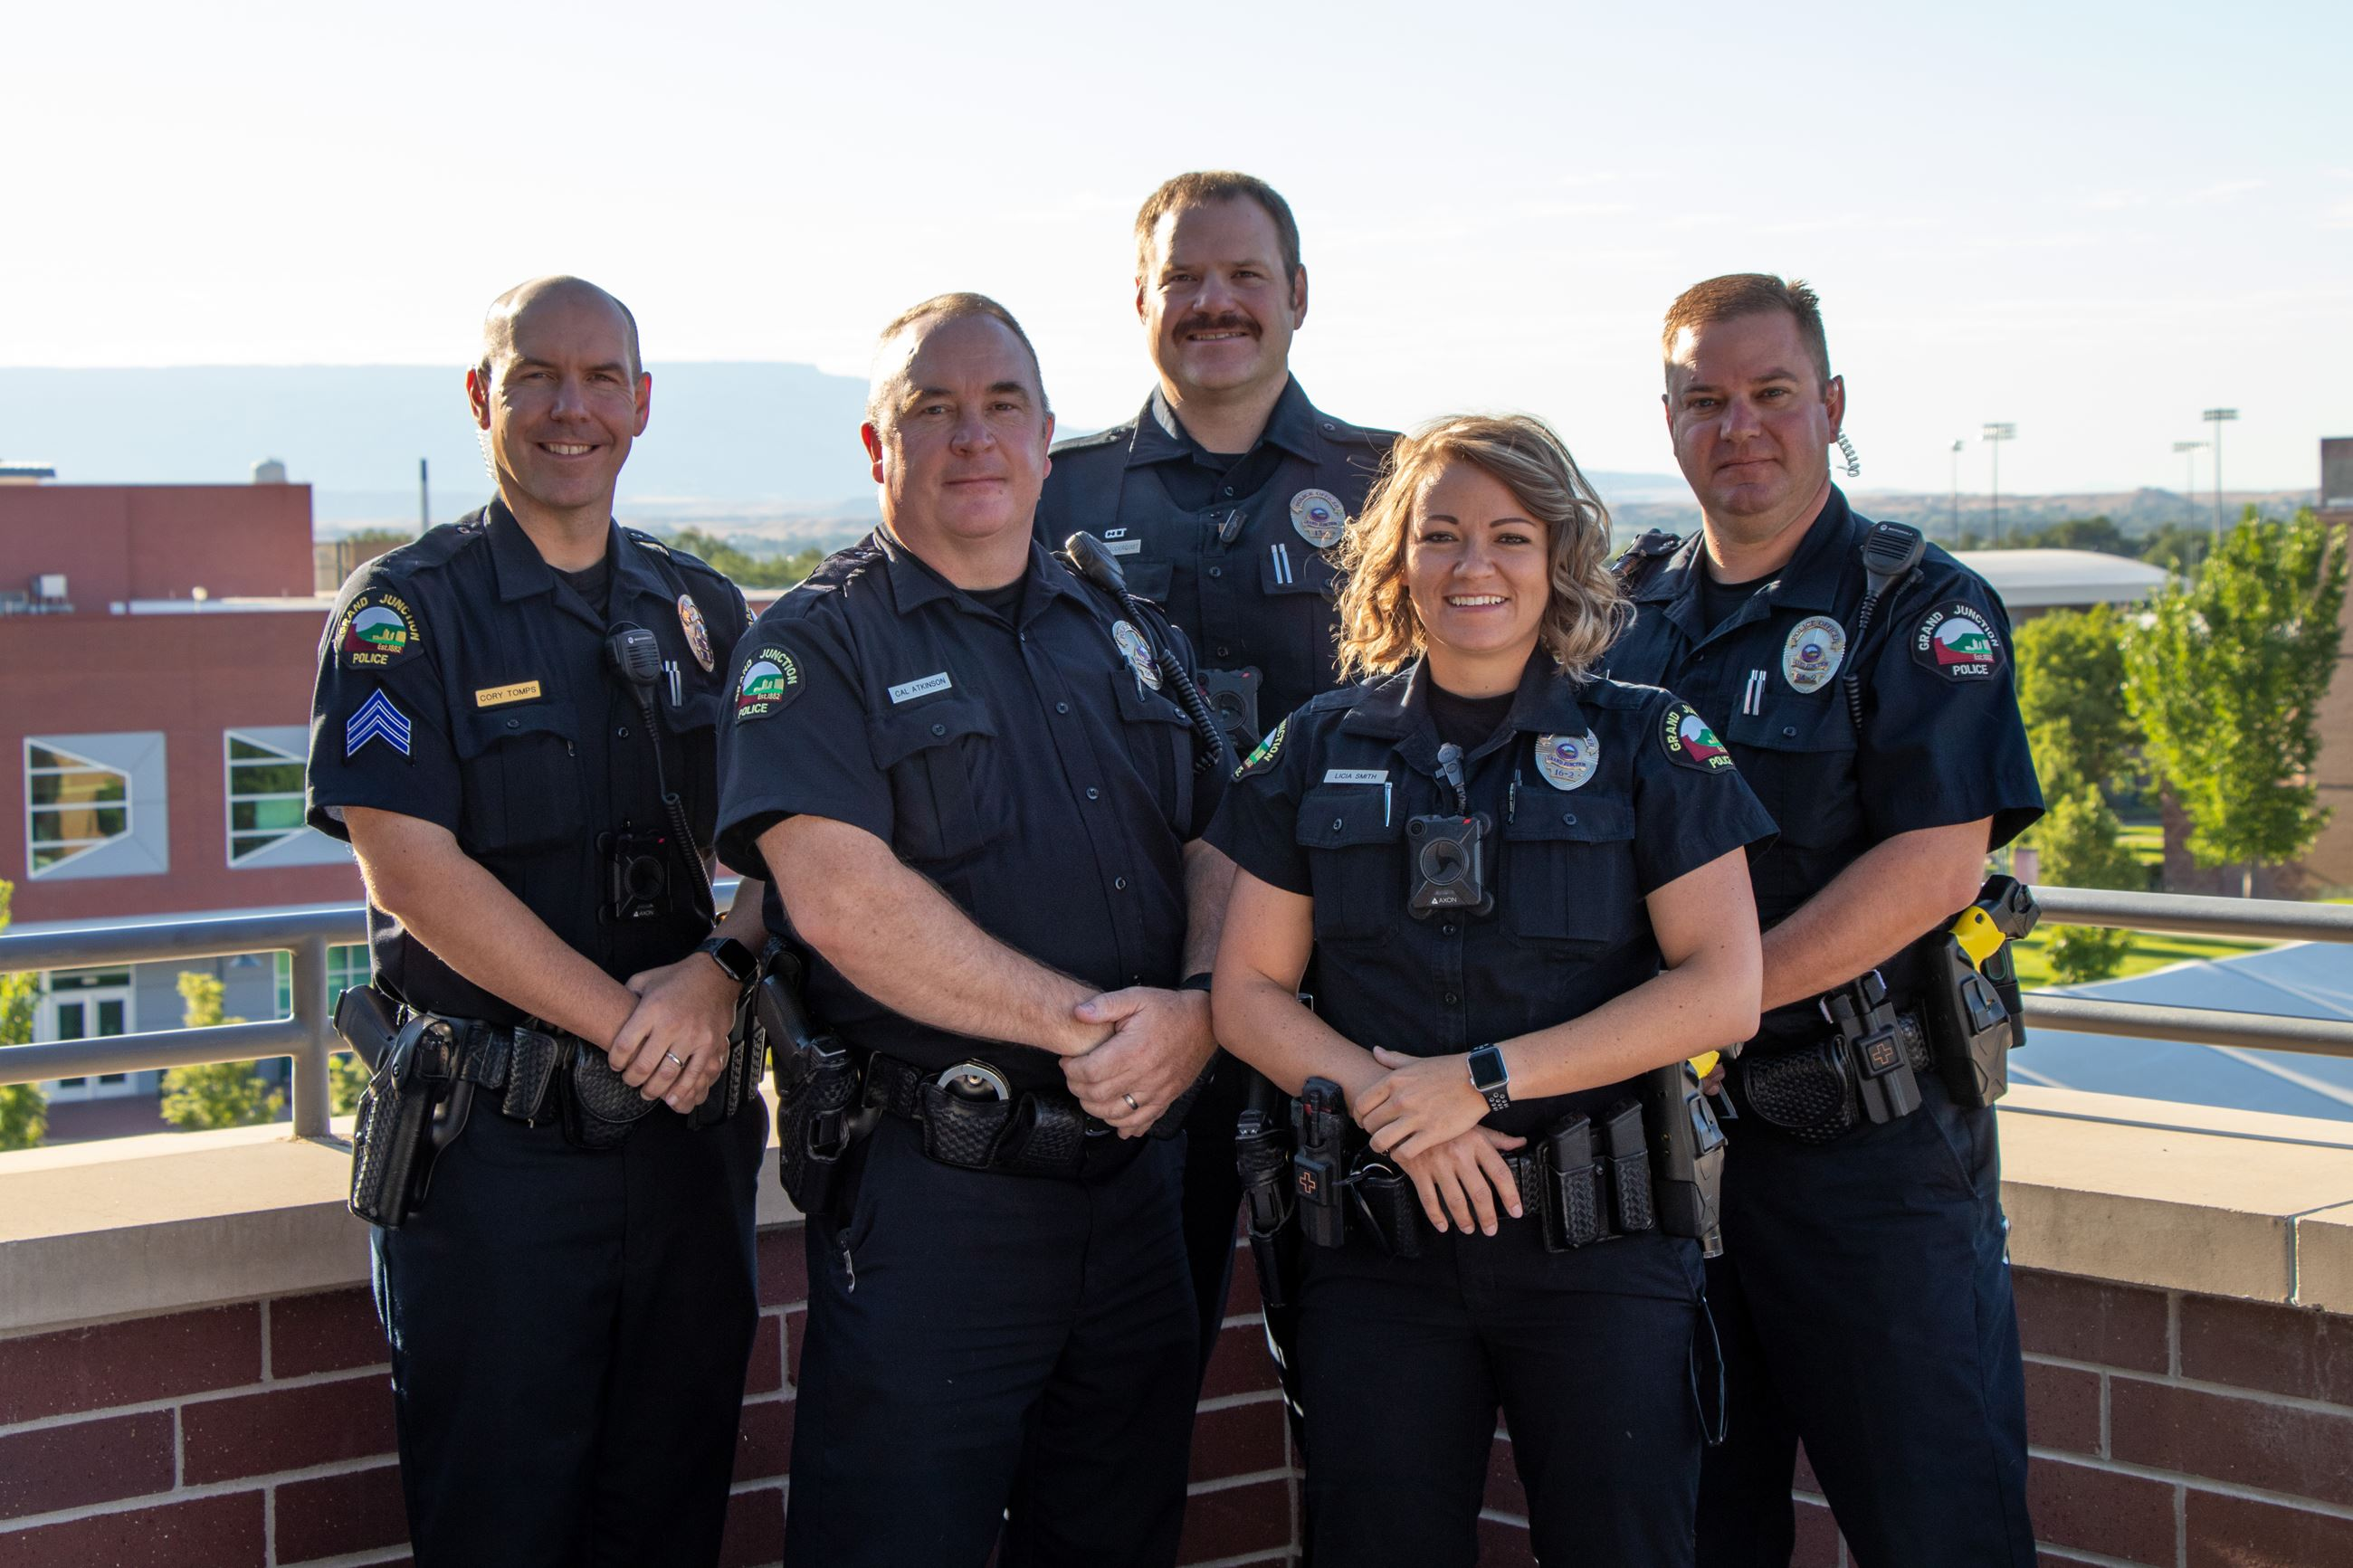 5 Grand Junction Police Department Officers  smiling